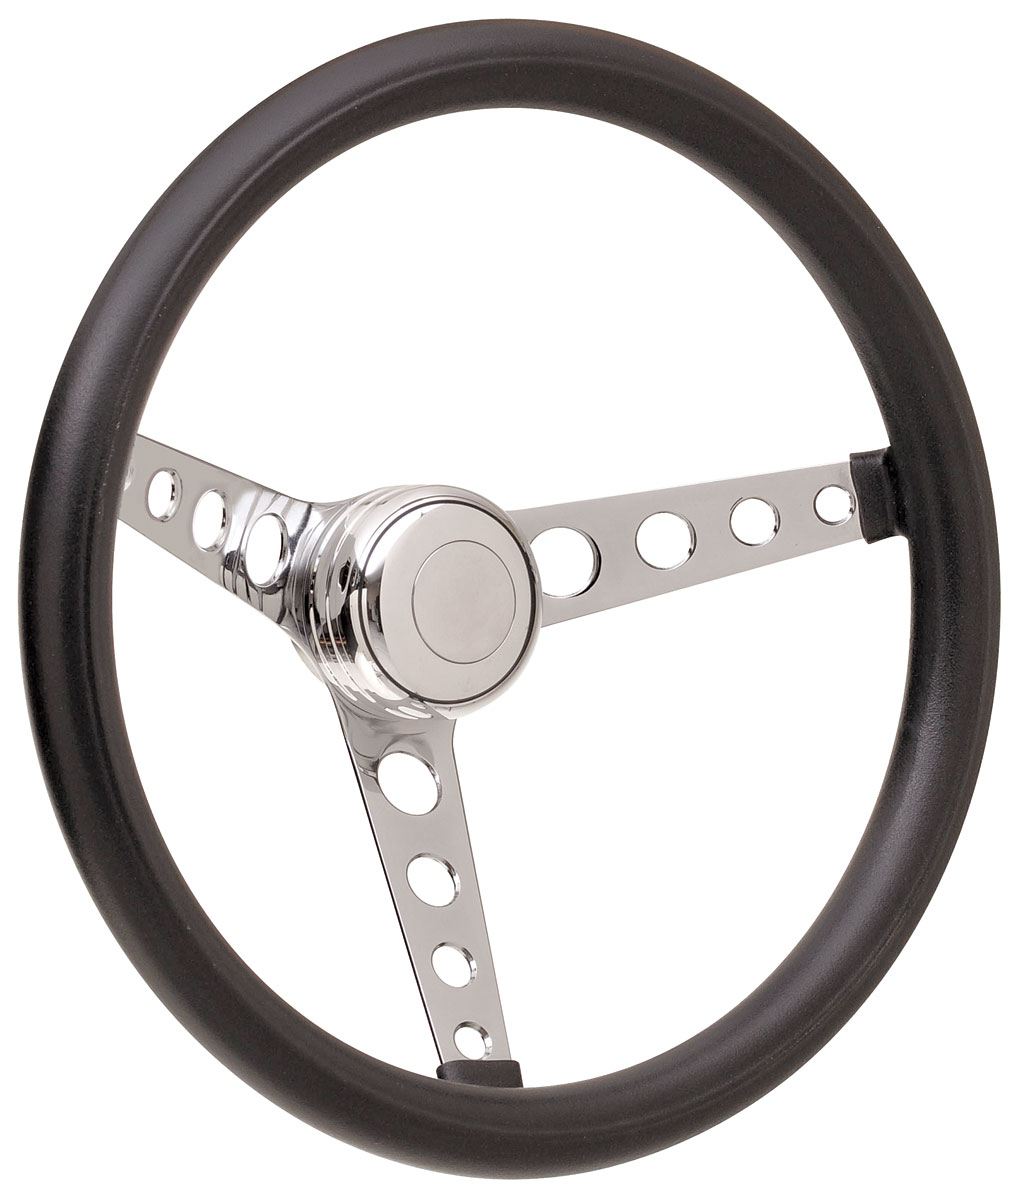 Steering Wheel Kit, 69-89 GM, Classic Foam, Tall Cap, Plain, Polished